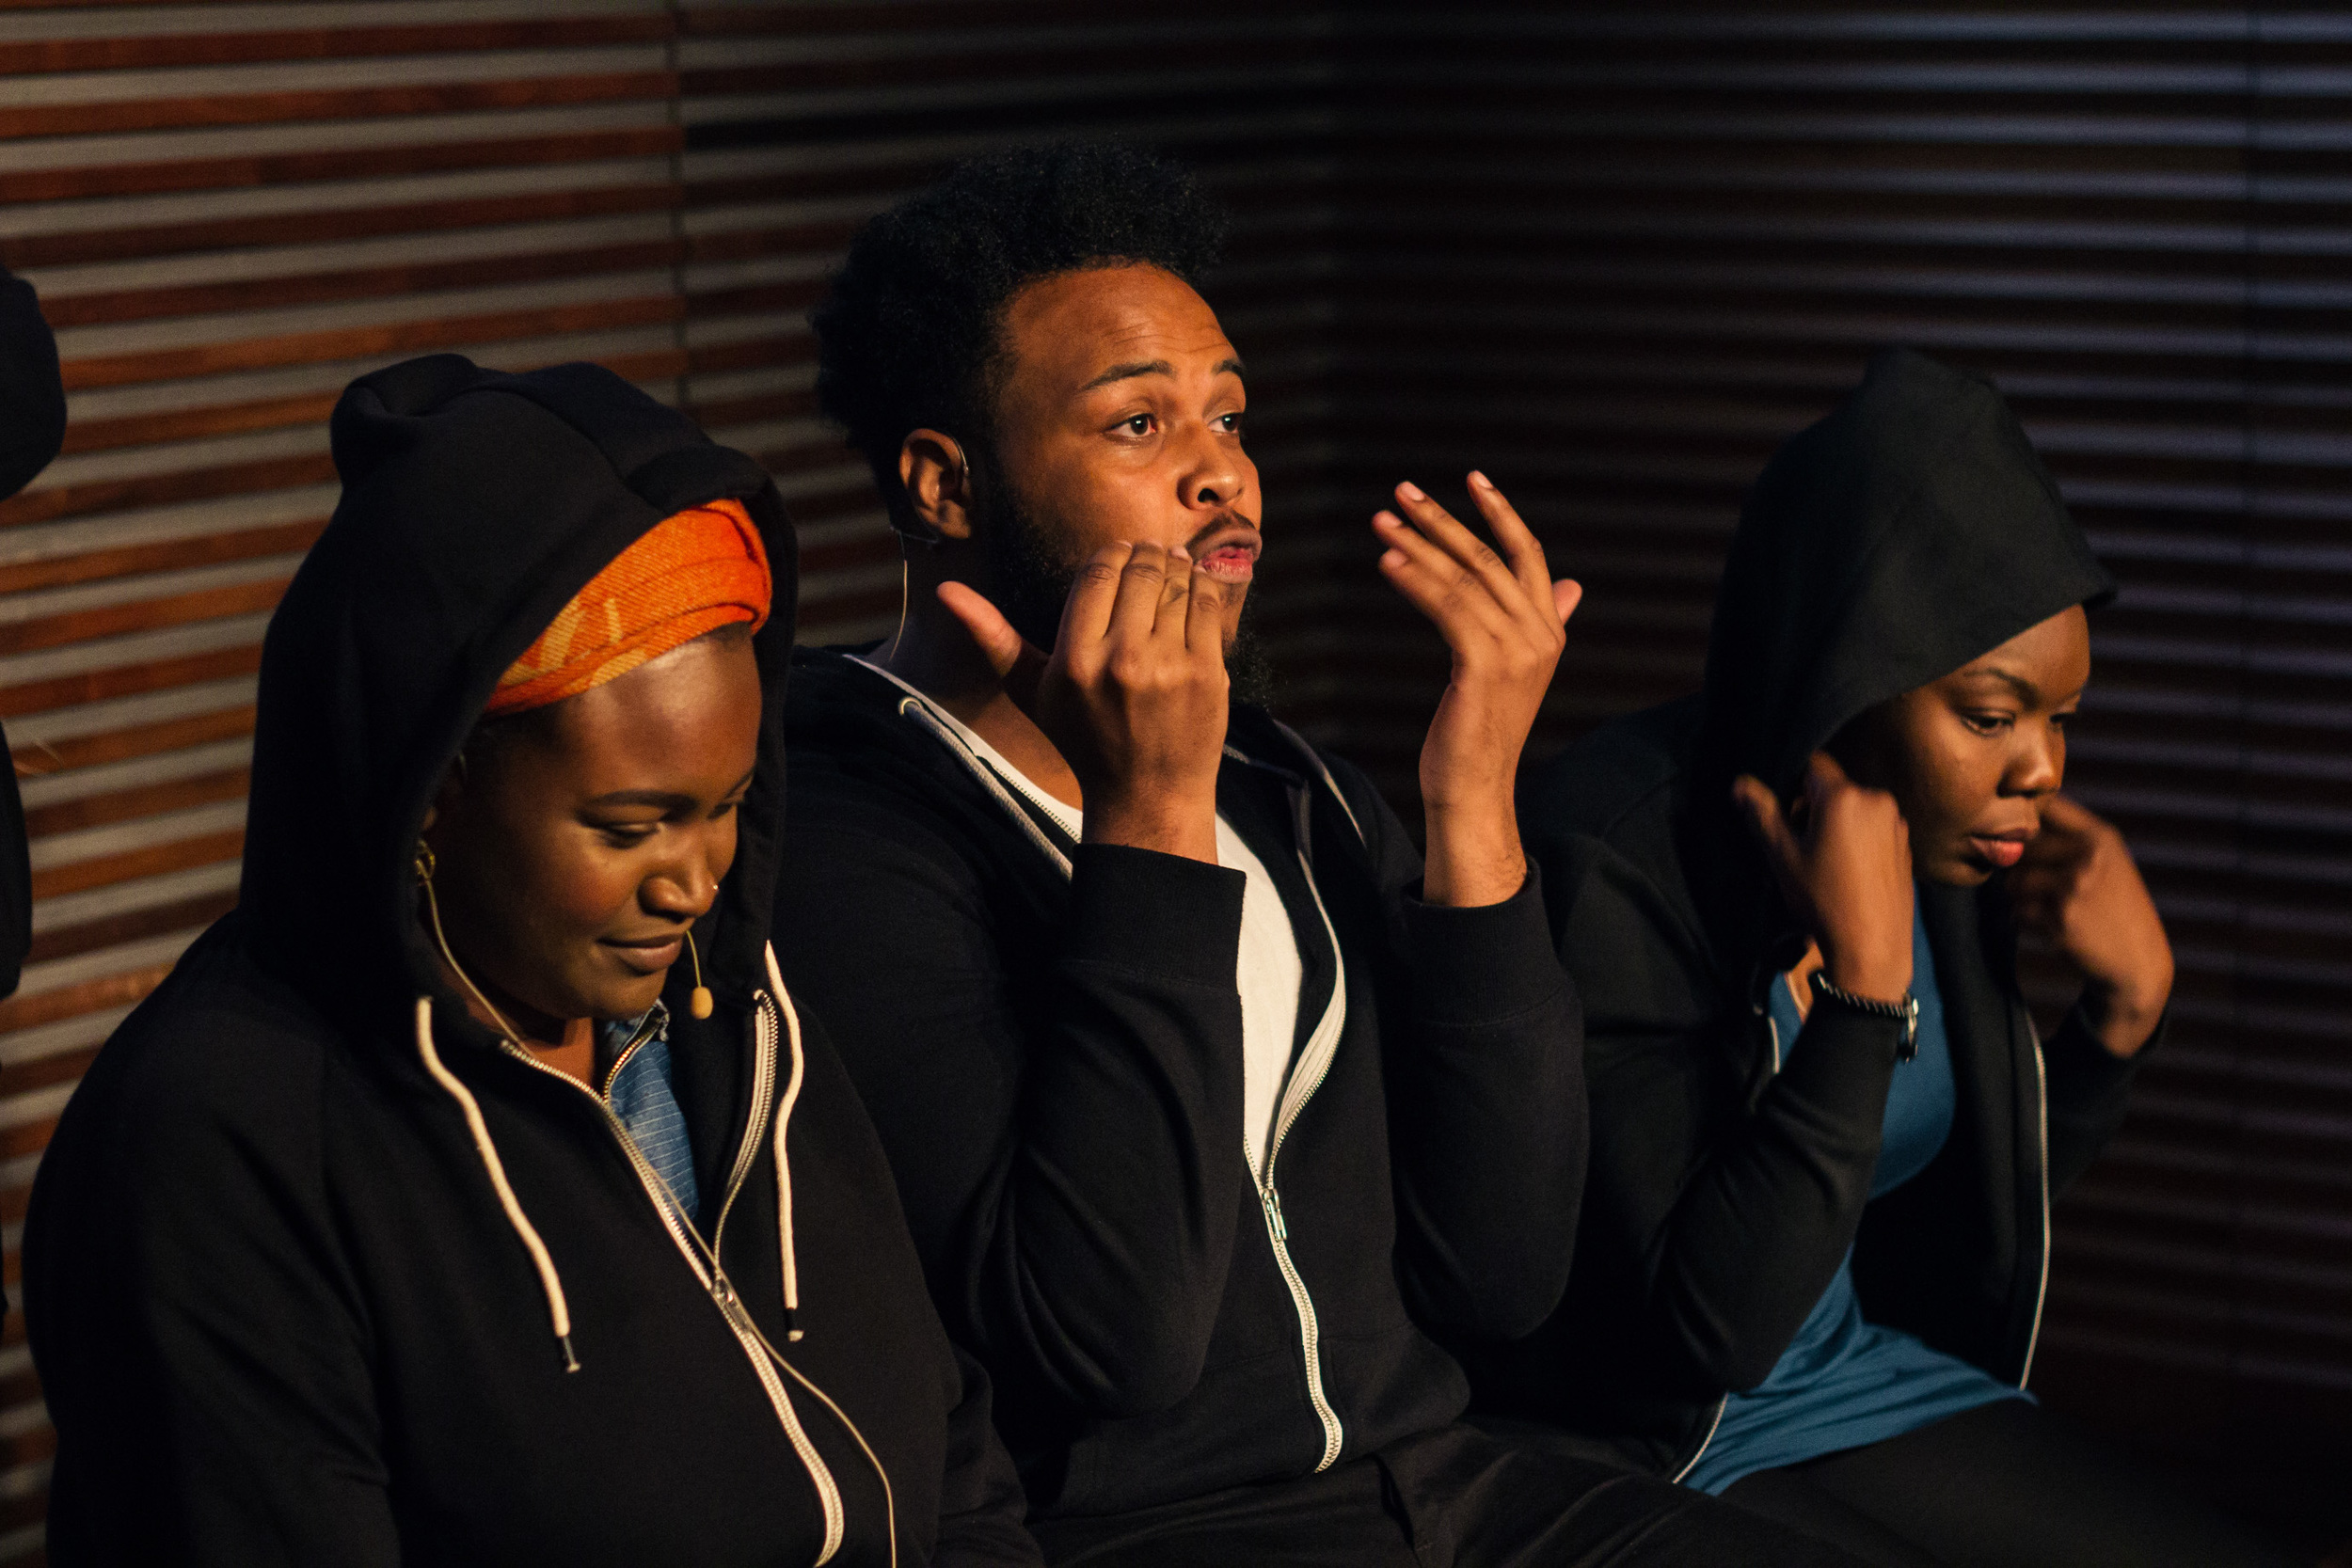 ILÉ LA WÀ ( a poetry- theatre production)    Saturday 12 November, 7.30pm @Contact Oxford Road Manchester, M15 6JA   TICKETS: £11/6 conc  BUY TICKETS AT 0161 274 0600 |  www.contactmcr.com/homeis    On the morning, the government unleashes controversial Go Home buses on the streets of London, random spot checks take place across the city and several individuals are held pending verification of their identity.    4 strangers who call England home are detained together. As their frustration builds, they speculate about their predicament and are forced to interrogate what it means to be British in the 21st century.    Ilé la Wà, Yoruba for 'We are Home', takes the audience on a funny, emotional and thought provoking rollercoaster ride of drama and poetry. Join us as we explore what it means to insist we are home, when daily experience doesn't reflect the sentiment.   Ilé la Wà is written by Tolu Agbelusi, directed by award winning Sarah Meadows and includes poetry from acclaimed poets Tshaka Campbell, Russenï Fisher, Jemilea Wisdom Belinda Zhawi and Tolu Agbelusi. Actresses, Flo Wilson and Rudzani Moleya will join Tolu and Russenï for the performance of this piece.  This is a production of the Home Is… project presented by Tolu Agbelusi, generously funded by the Arts Council England and supported by Apples and Snakes and Counterpoint Arts.